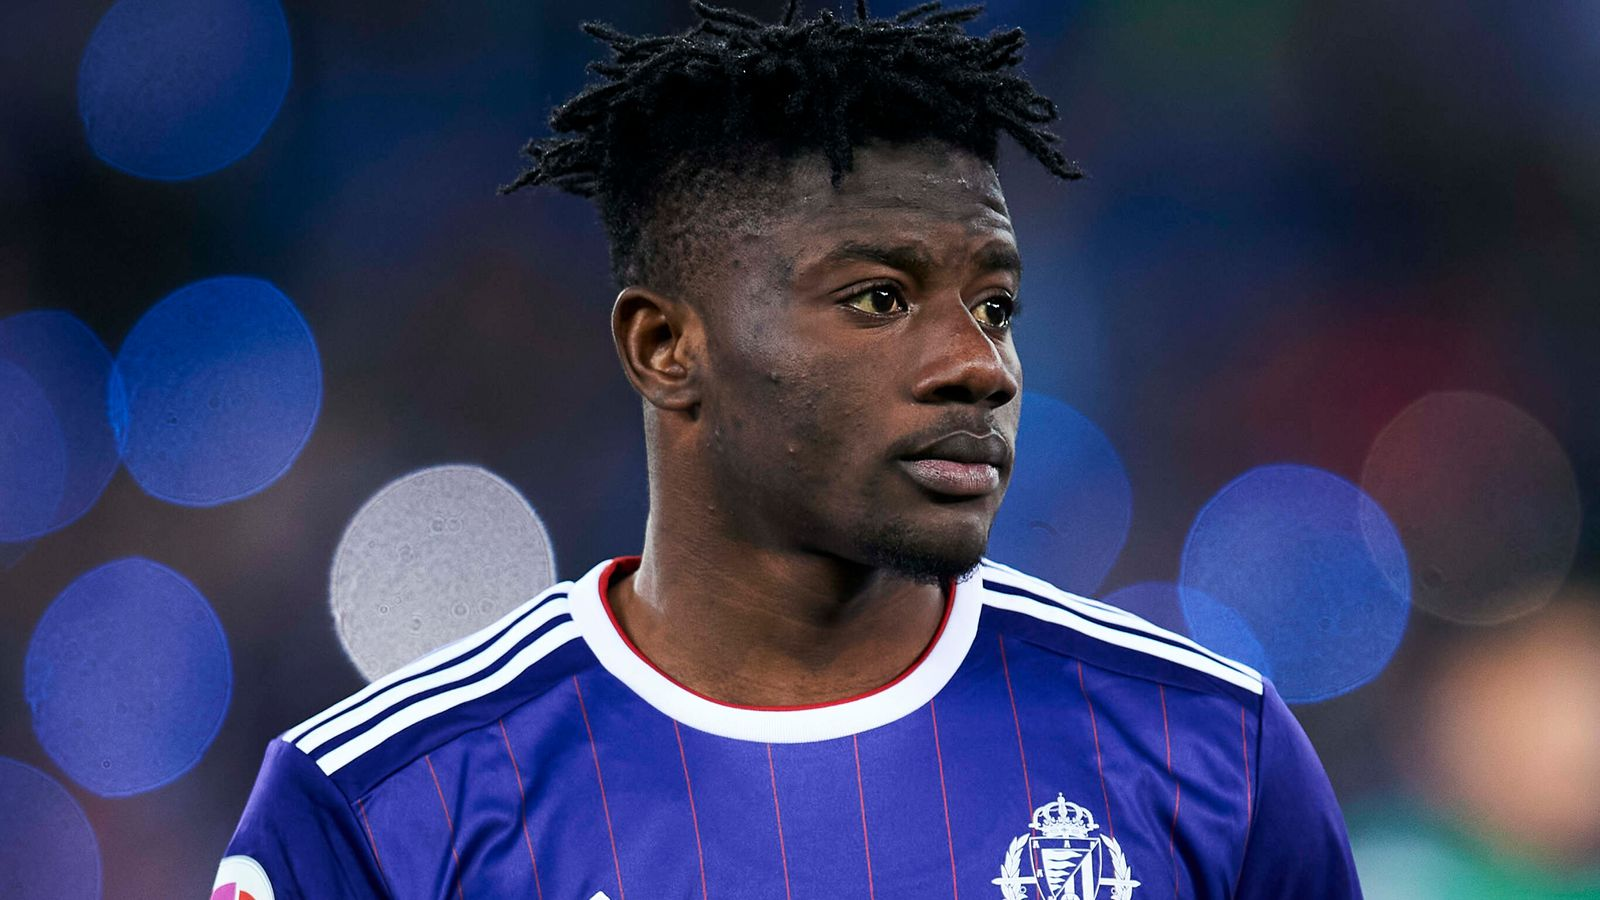 Southampton sign Mohammed Salisu for £10.9m from Real Valladolid